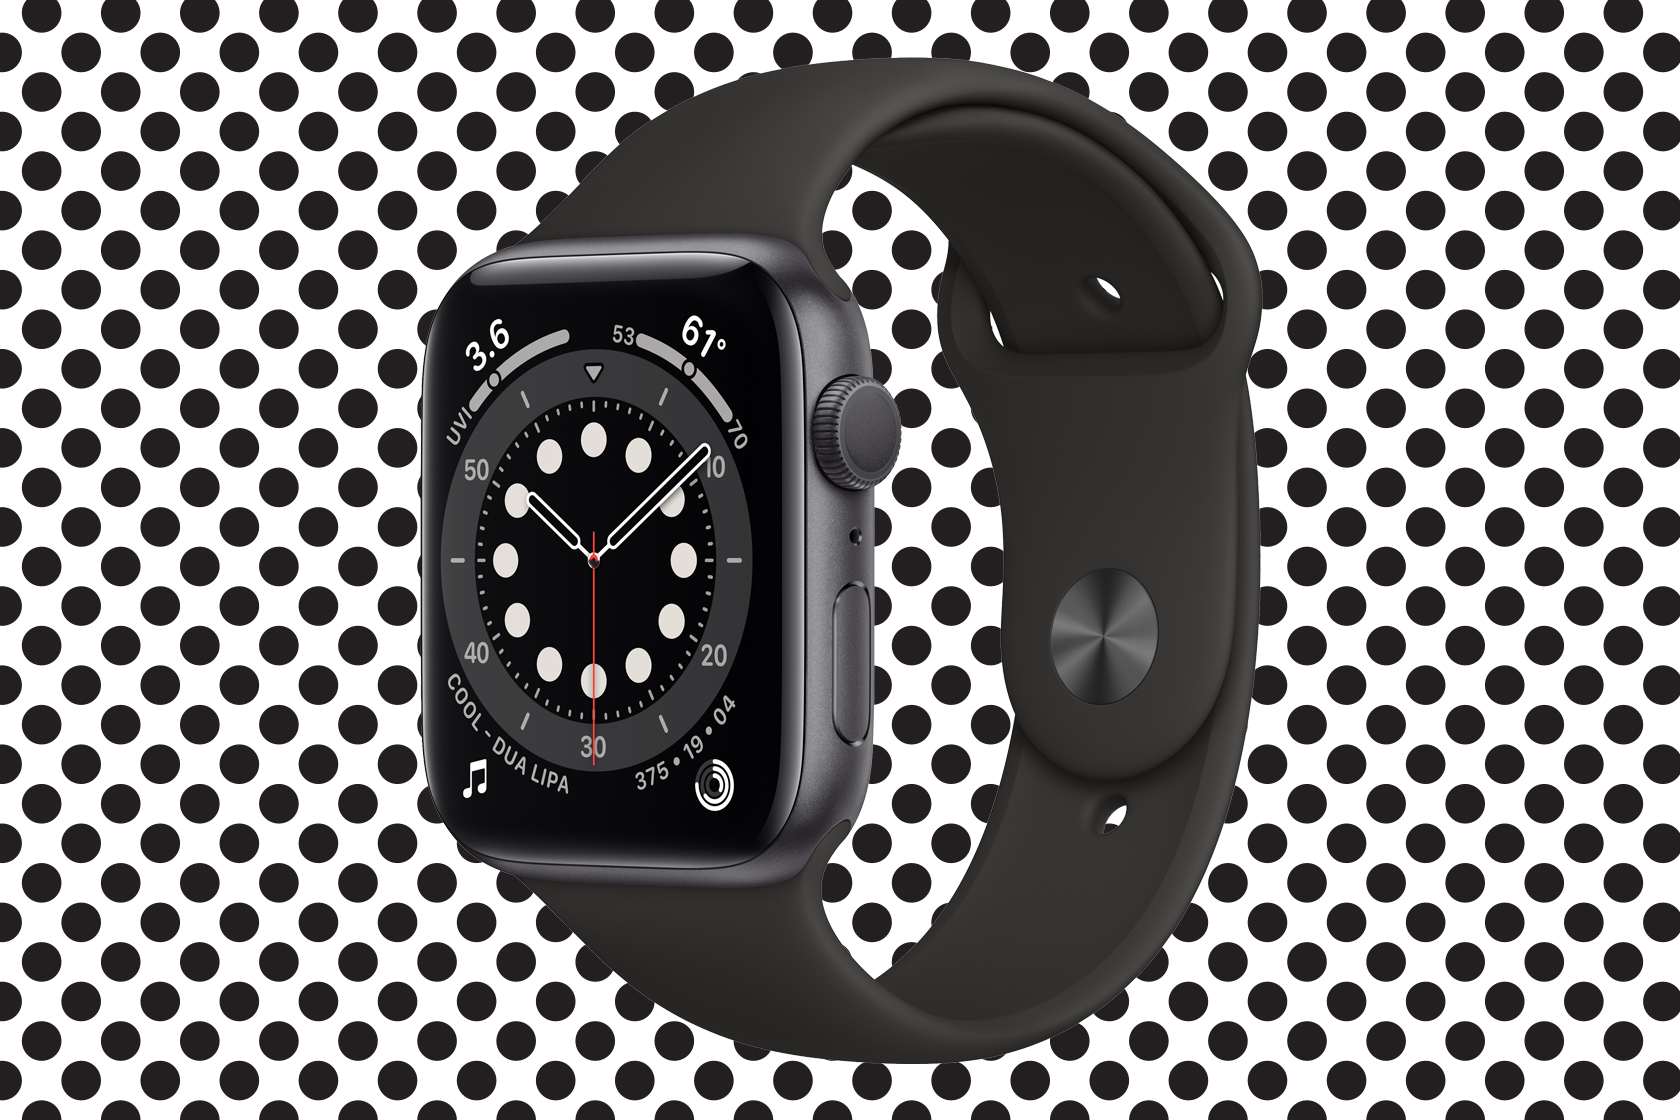 The Apple Watch Series 6 is at its lowest price ever